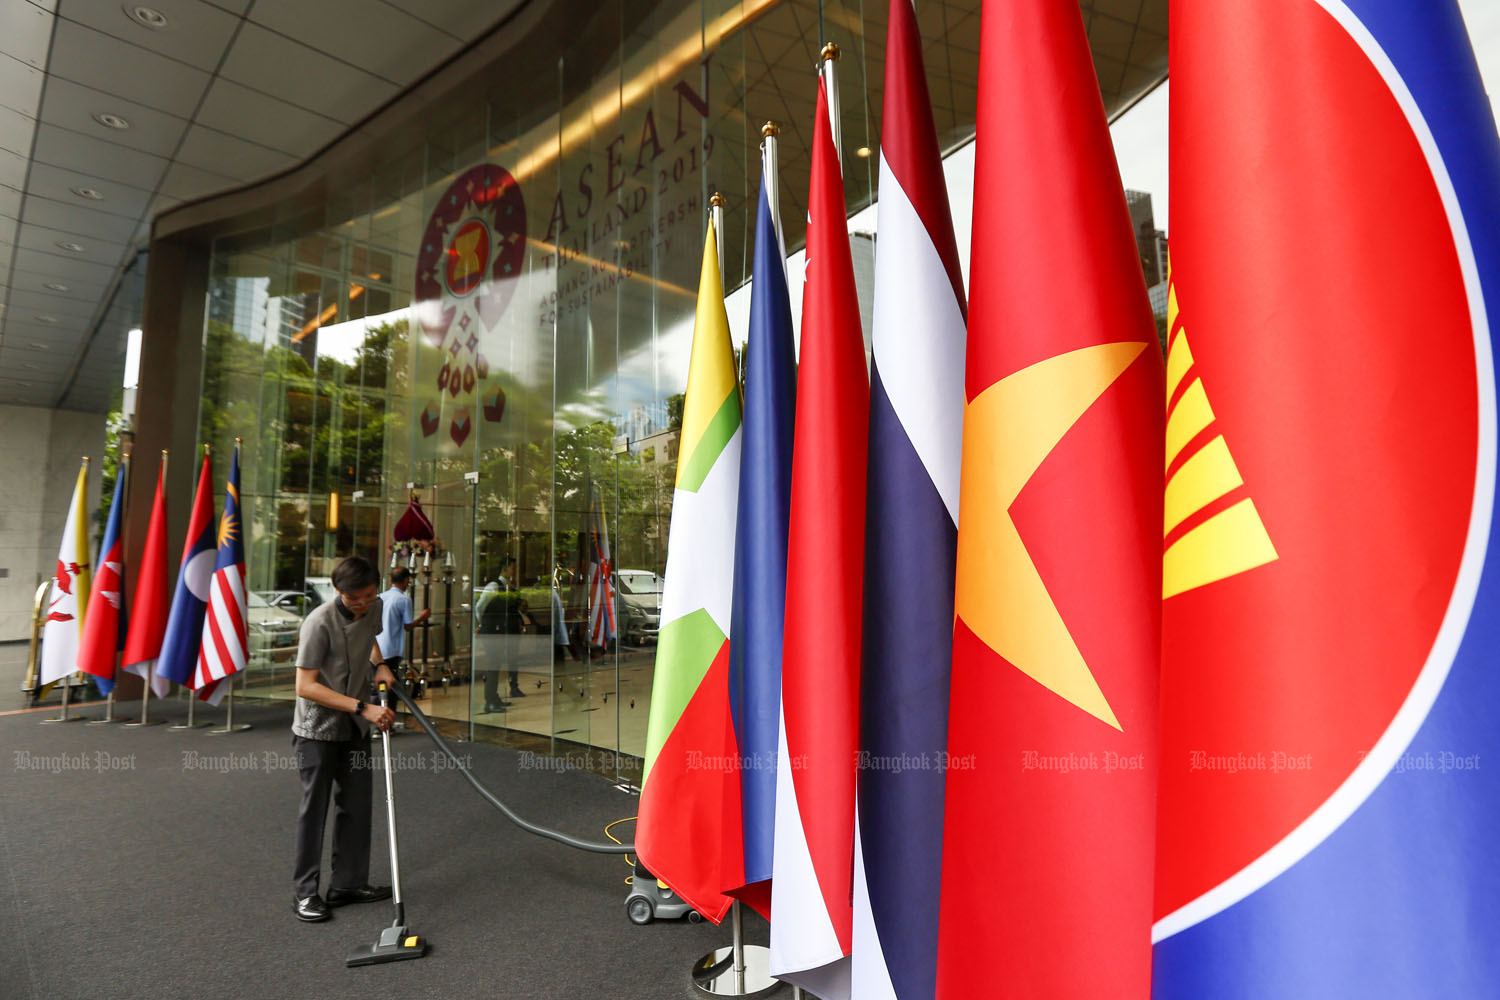 Asean economic ministers plan to sign a pact on mutual recognition arrangements for automobiles and parts as well as the improvement of protocols for dispute settlement mechanisms. (Bangkok Post photo)